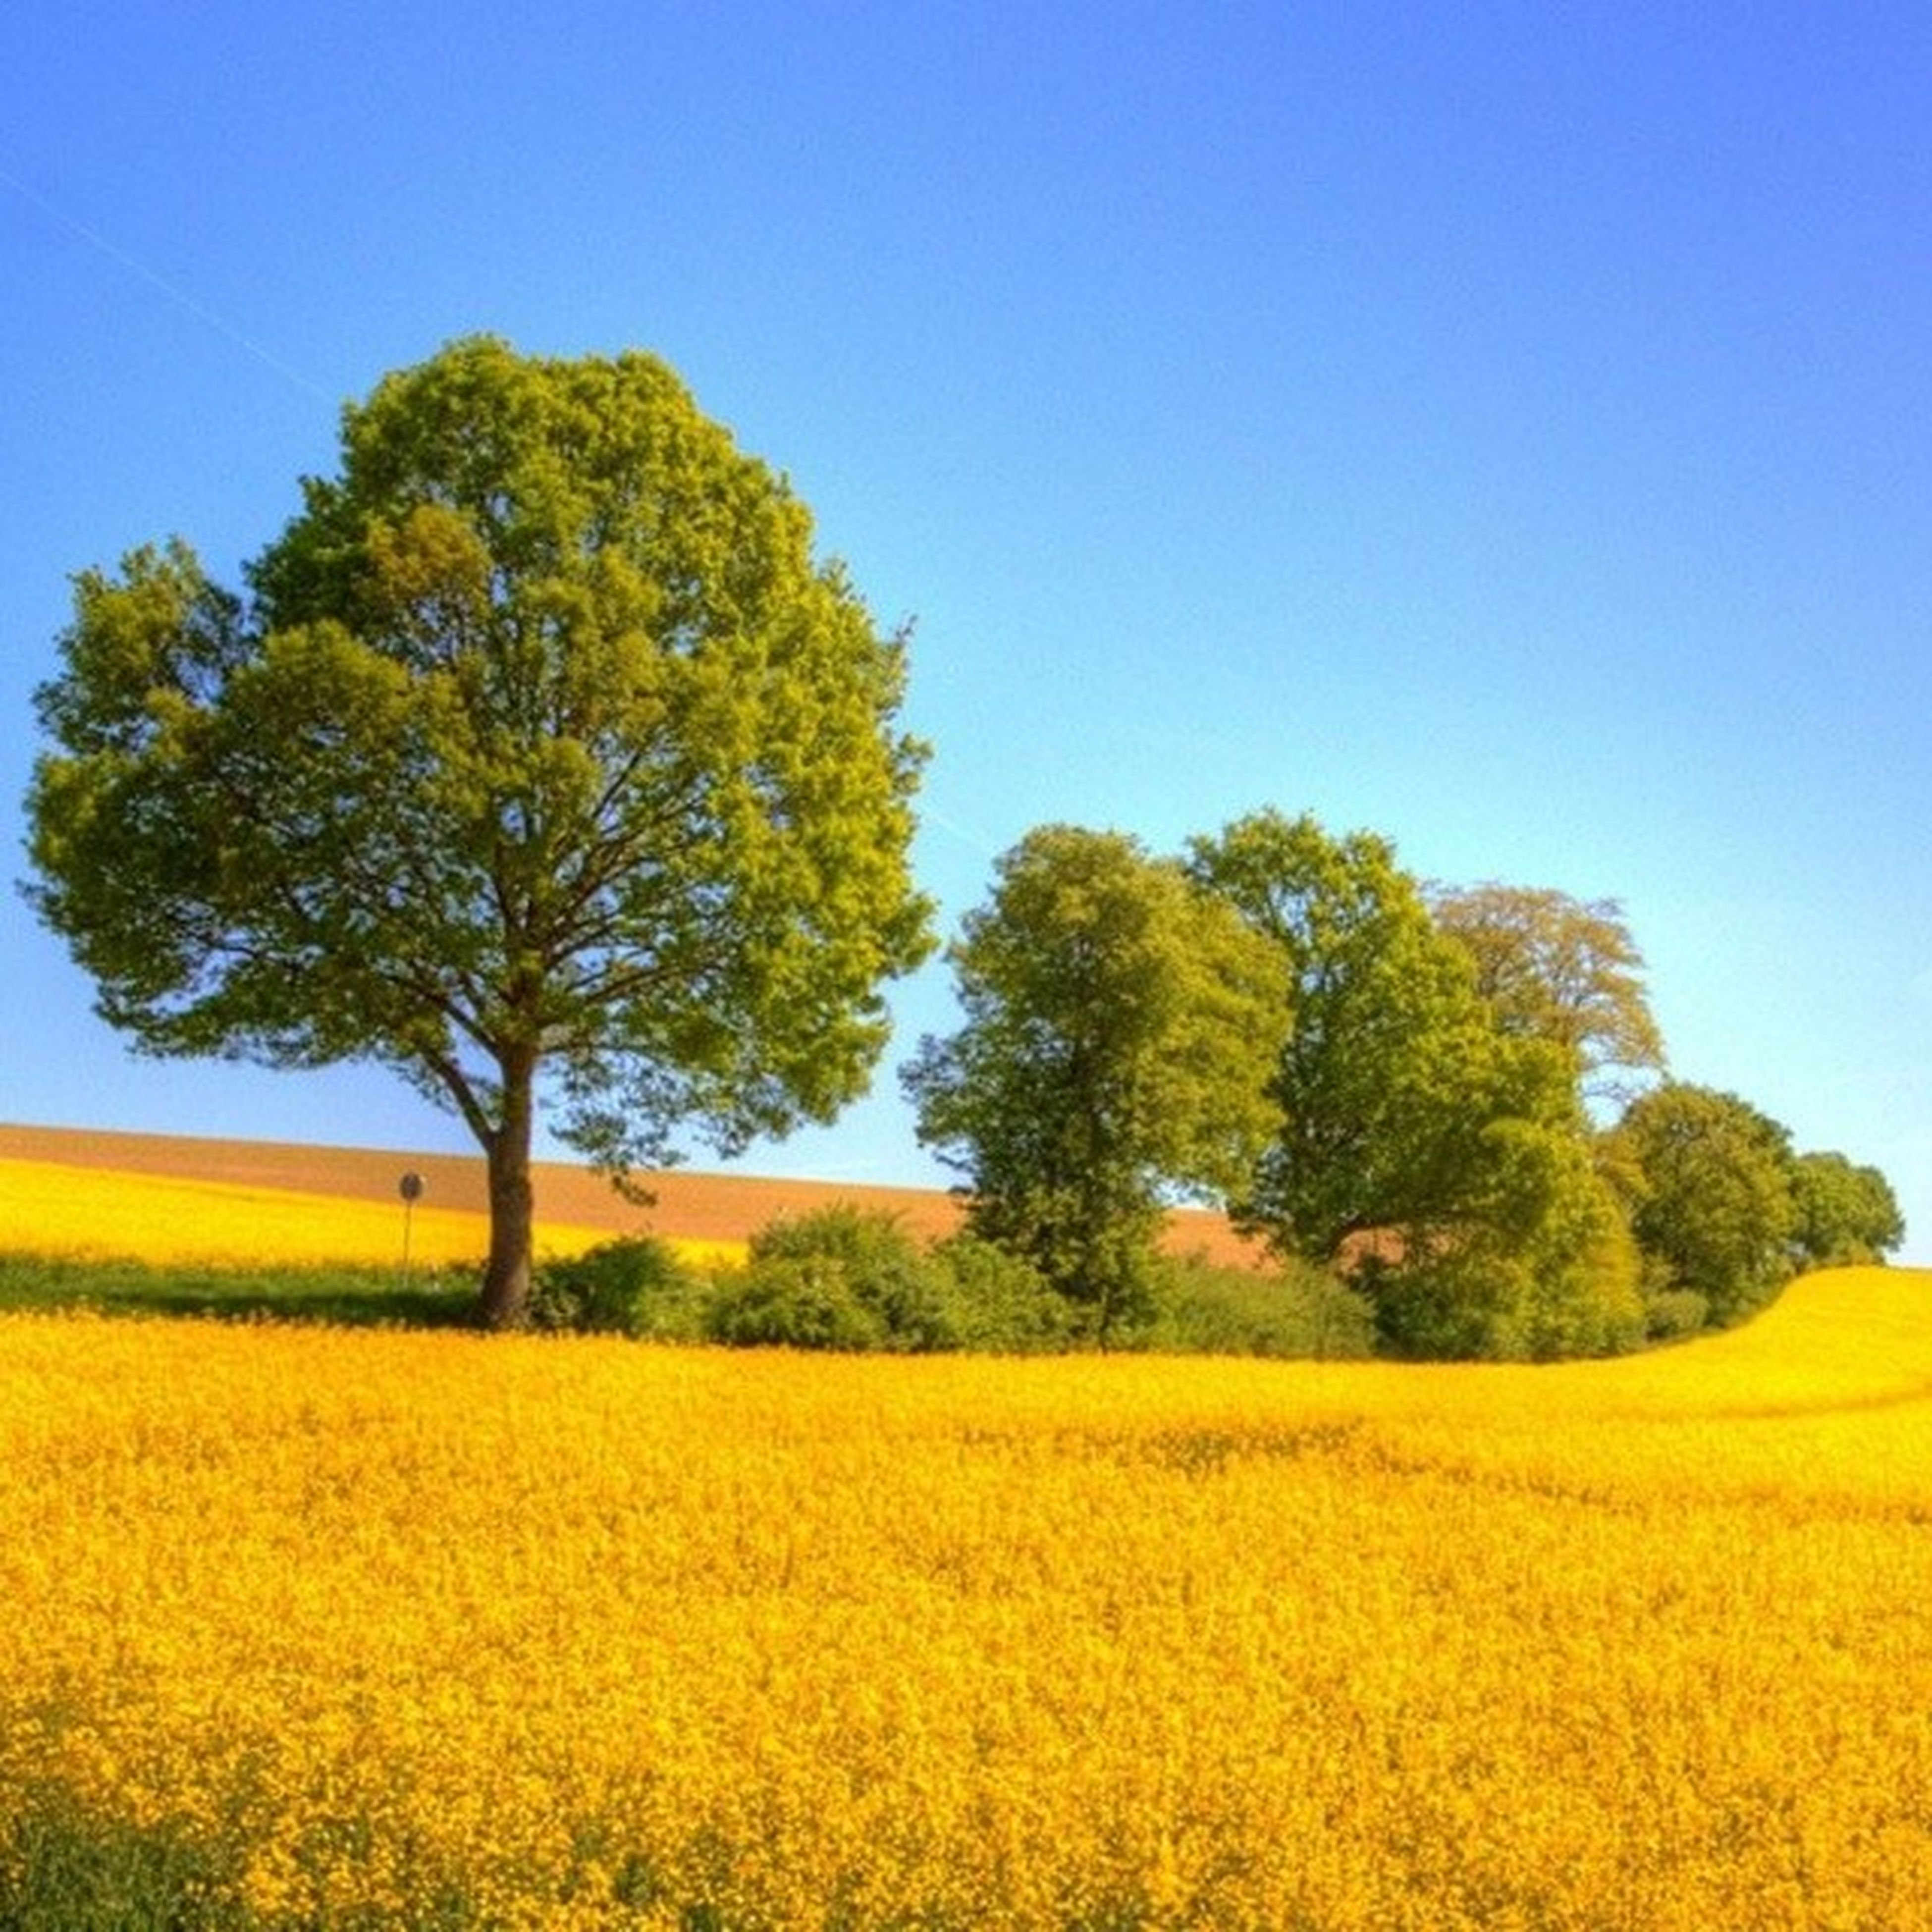 yellow, clear sky, tree, field, growth, beauty in nature, tranquility, tranquil scene, landscape, flower, nature, rural scene, agriculture, scenics, blue, oilseed rape, copy space, freshness, crop, farm